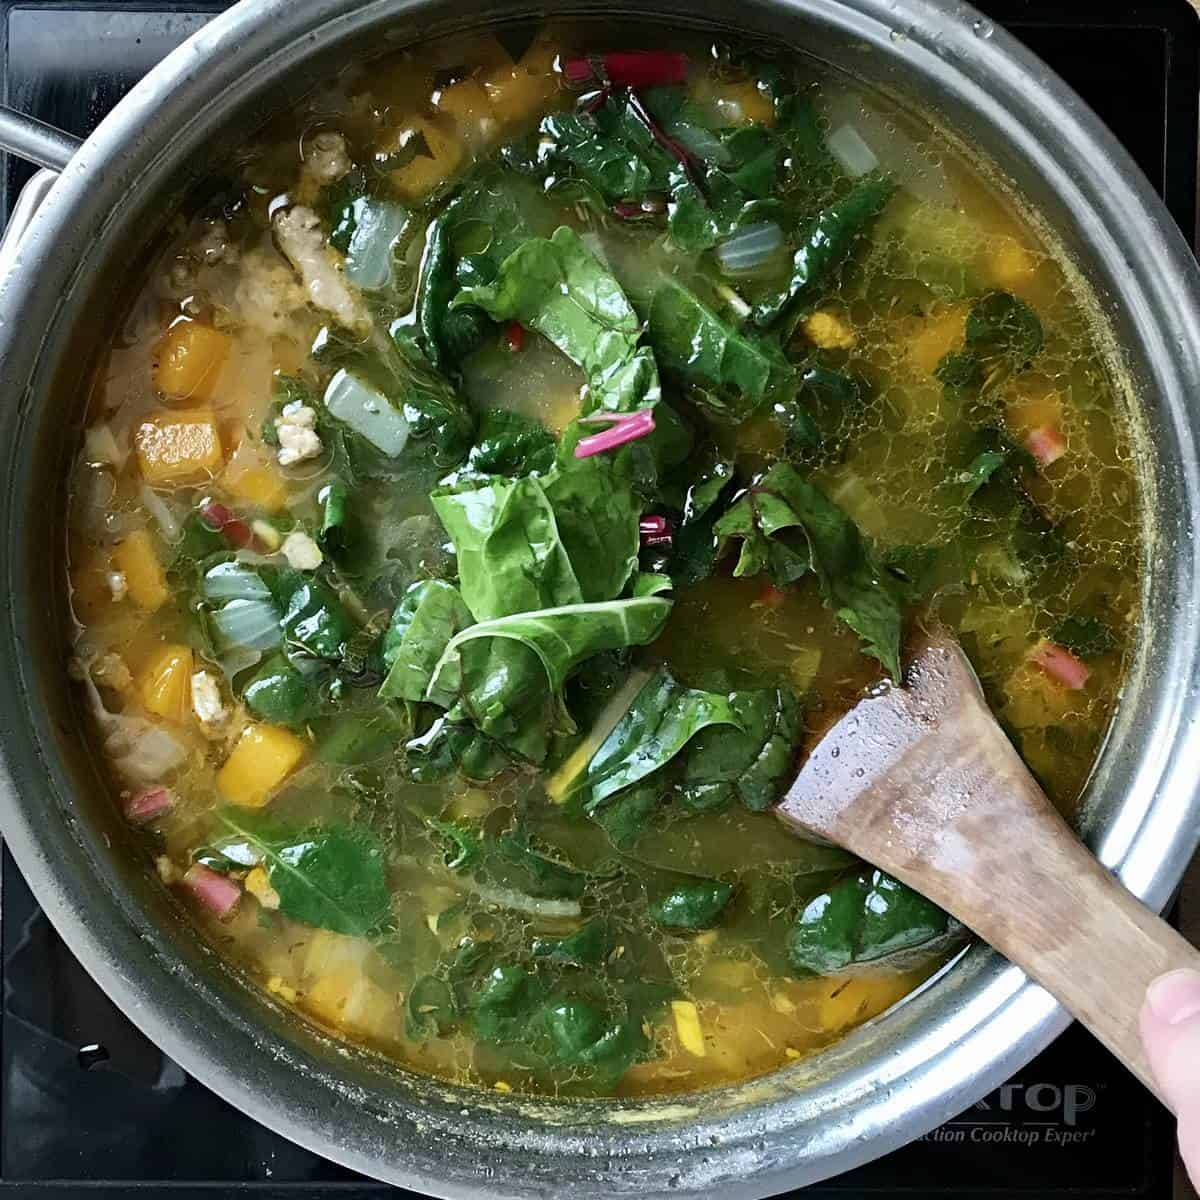 Swiss chard being added to the stockpot.